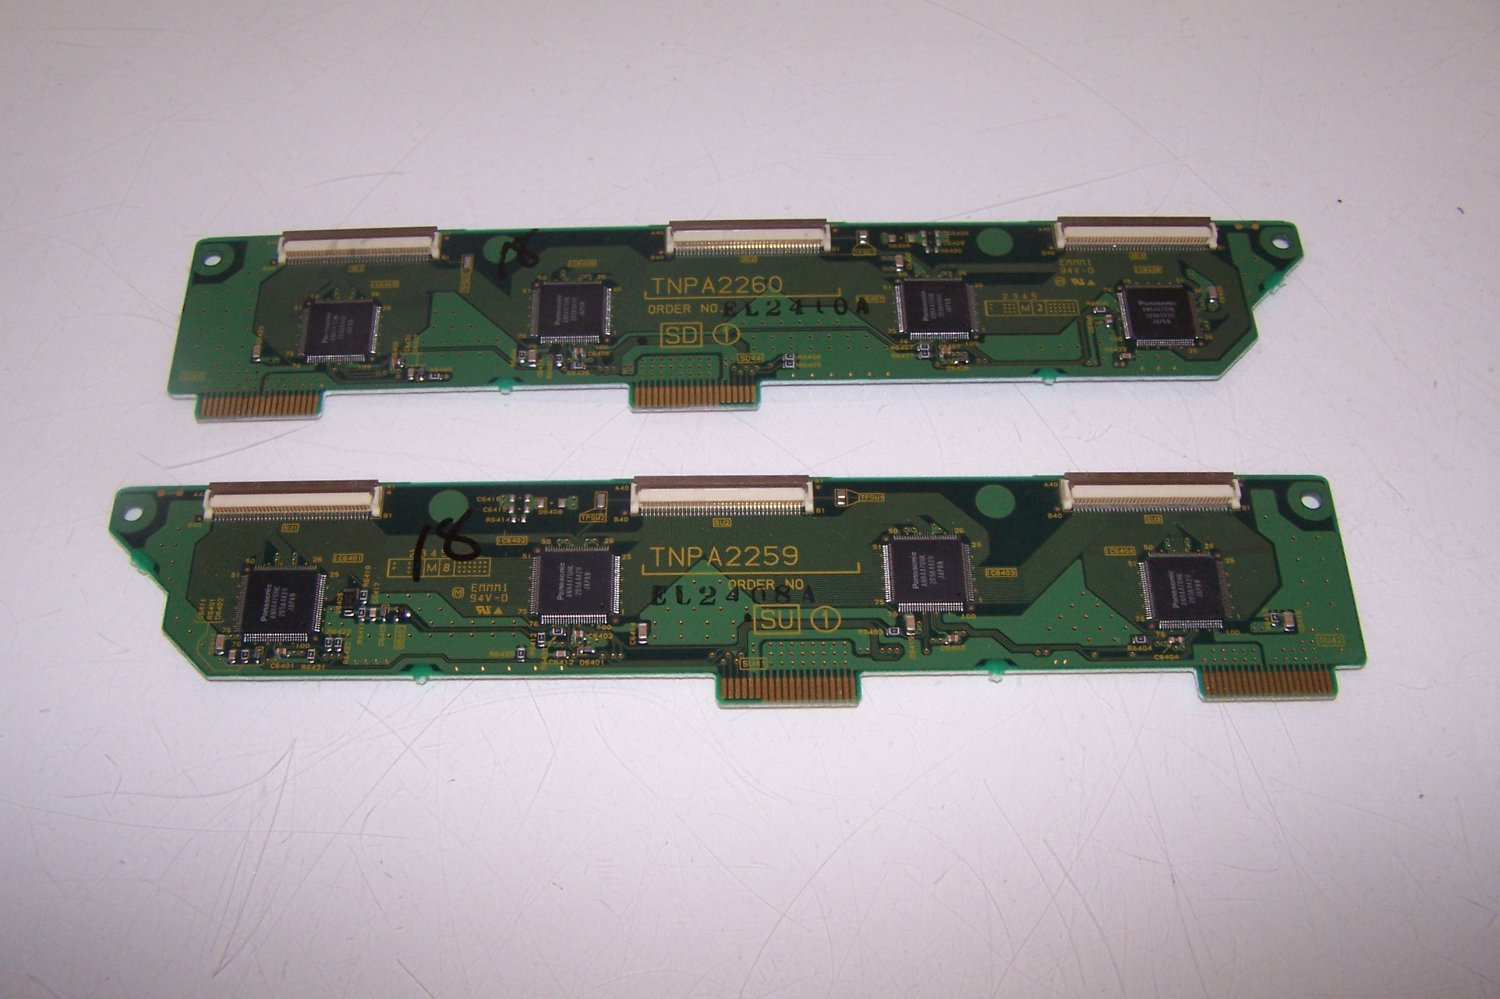 Panasonic TNPA2259 SU Board TNPA2260 SD Board Kit